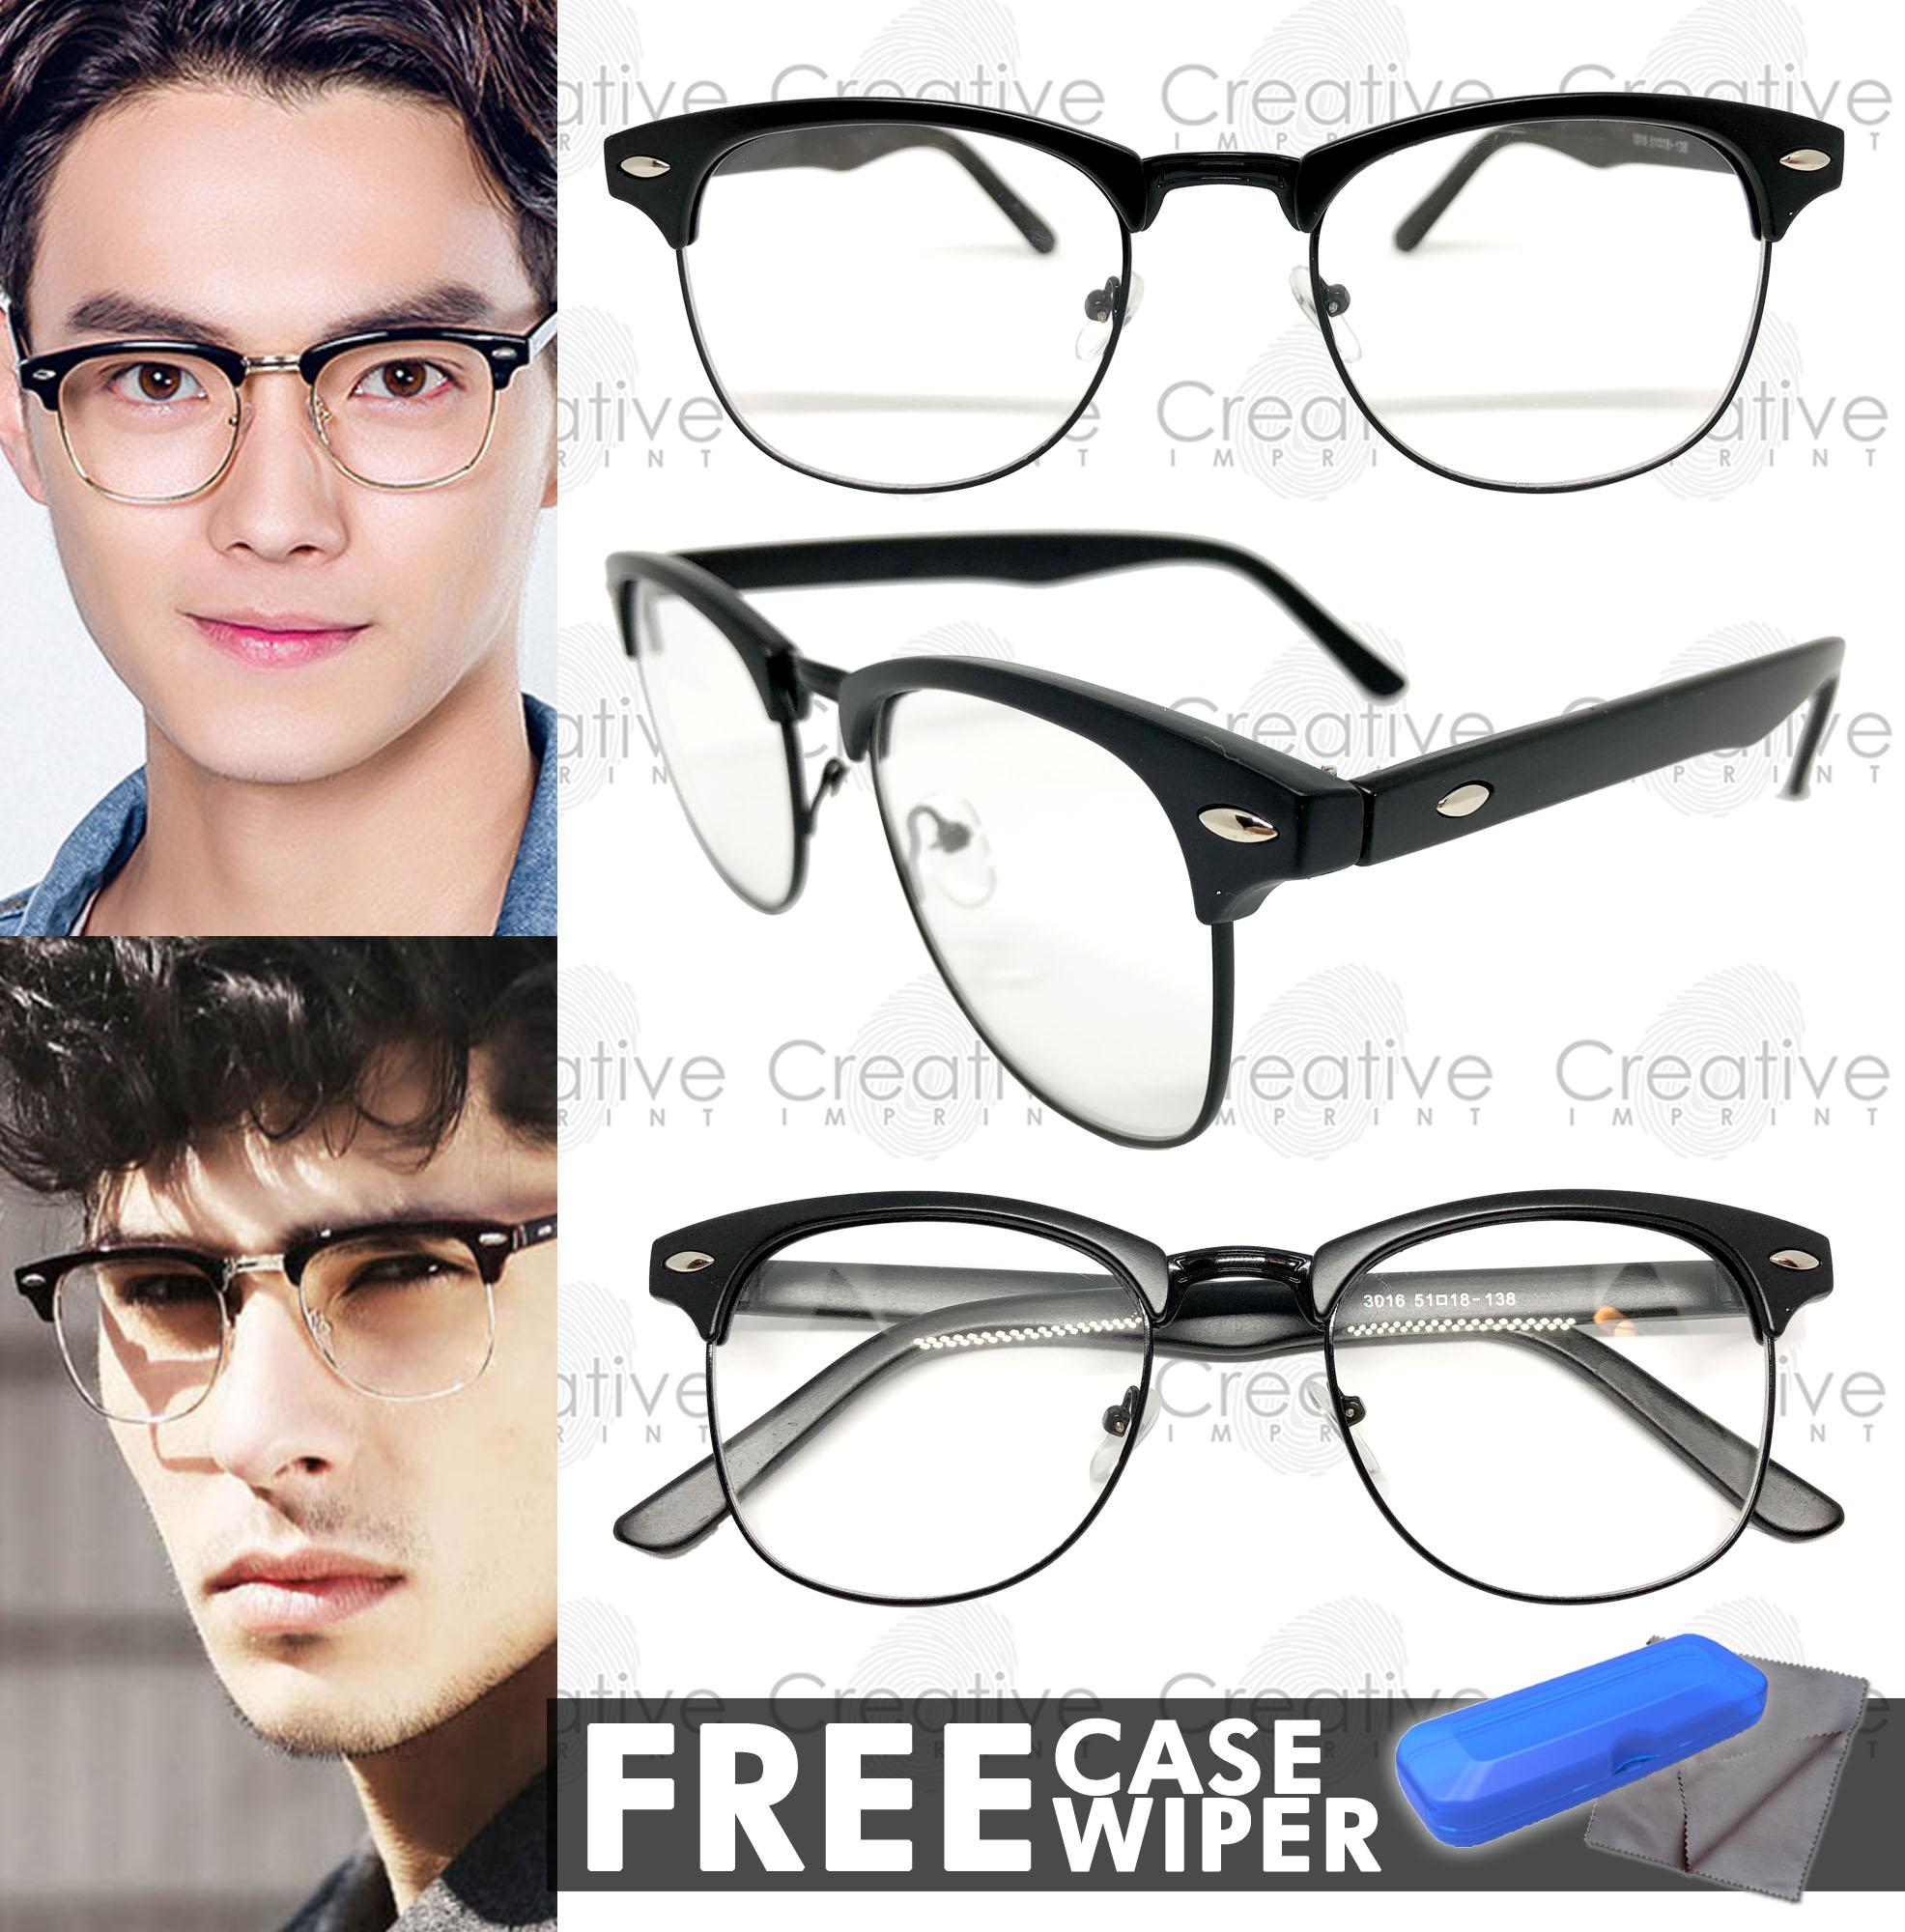 de6f6b3b93b2 Creative Imprint Eyeglasses Replaceable Lens Clubmaster  01 Premium High  Quality Specs Metal Korean Style Computer